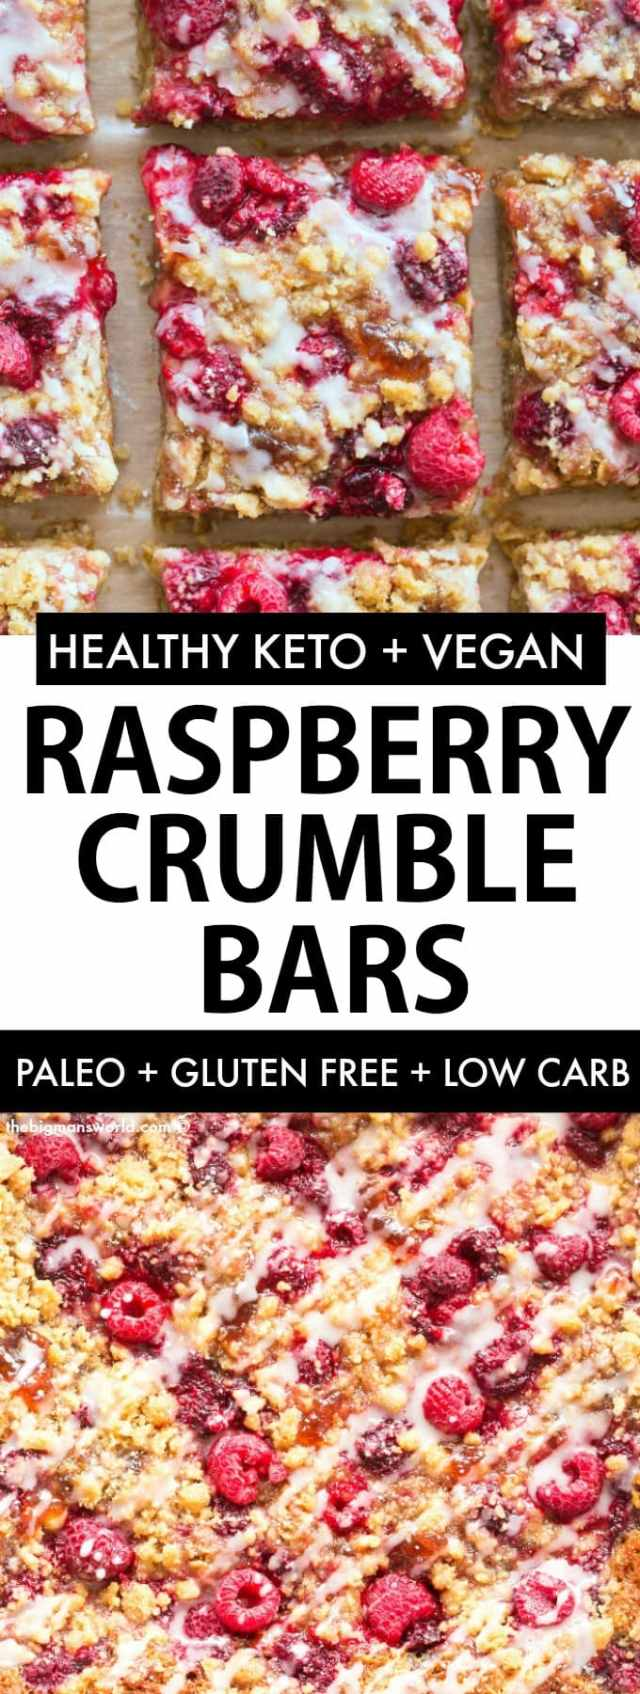 Raspberry Crumble bars with fresh raspberries is an easy low carb, keto and paleo recipe that is naturally vegan and gluten free.